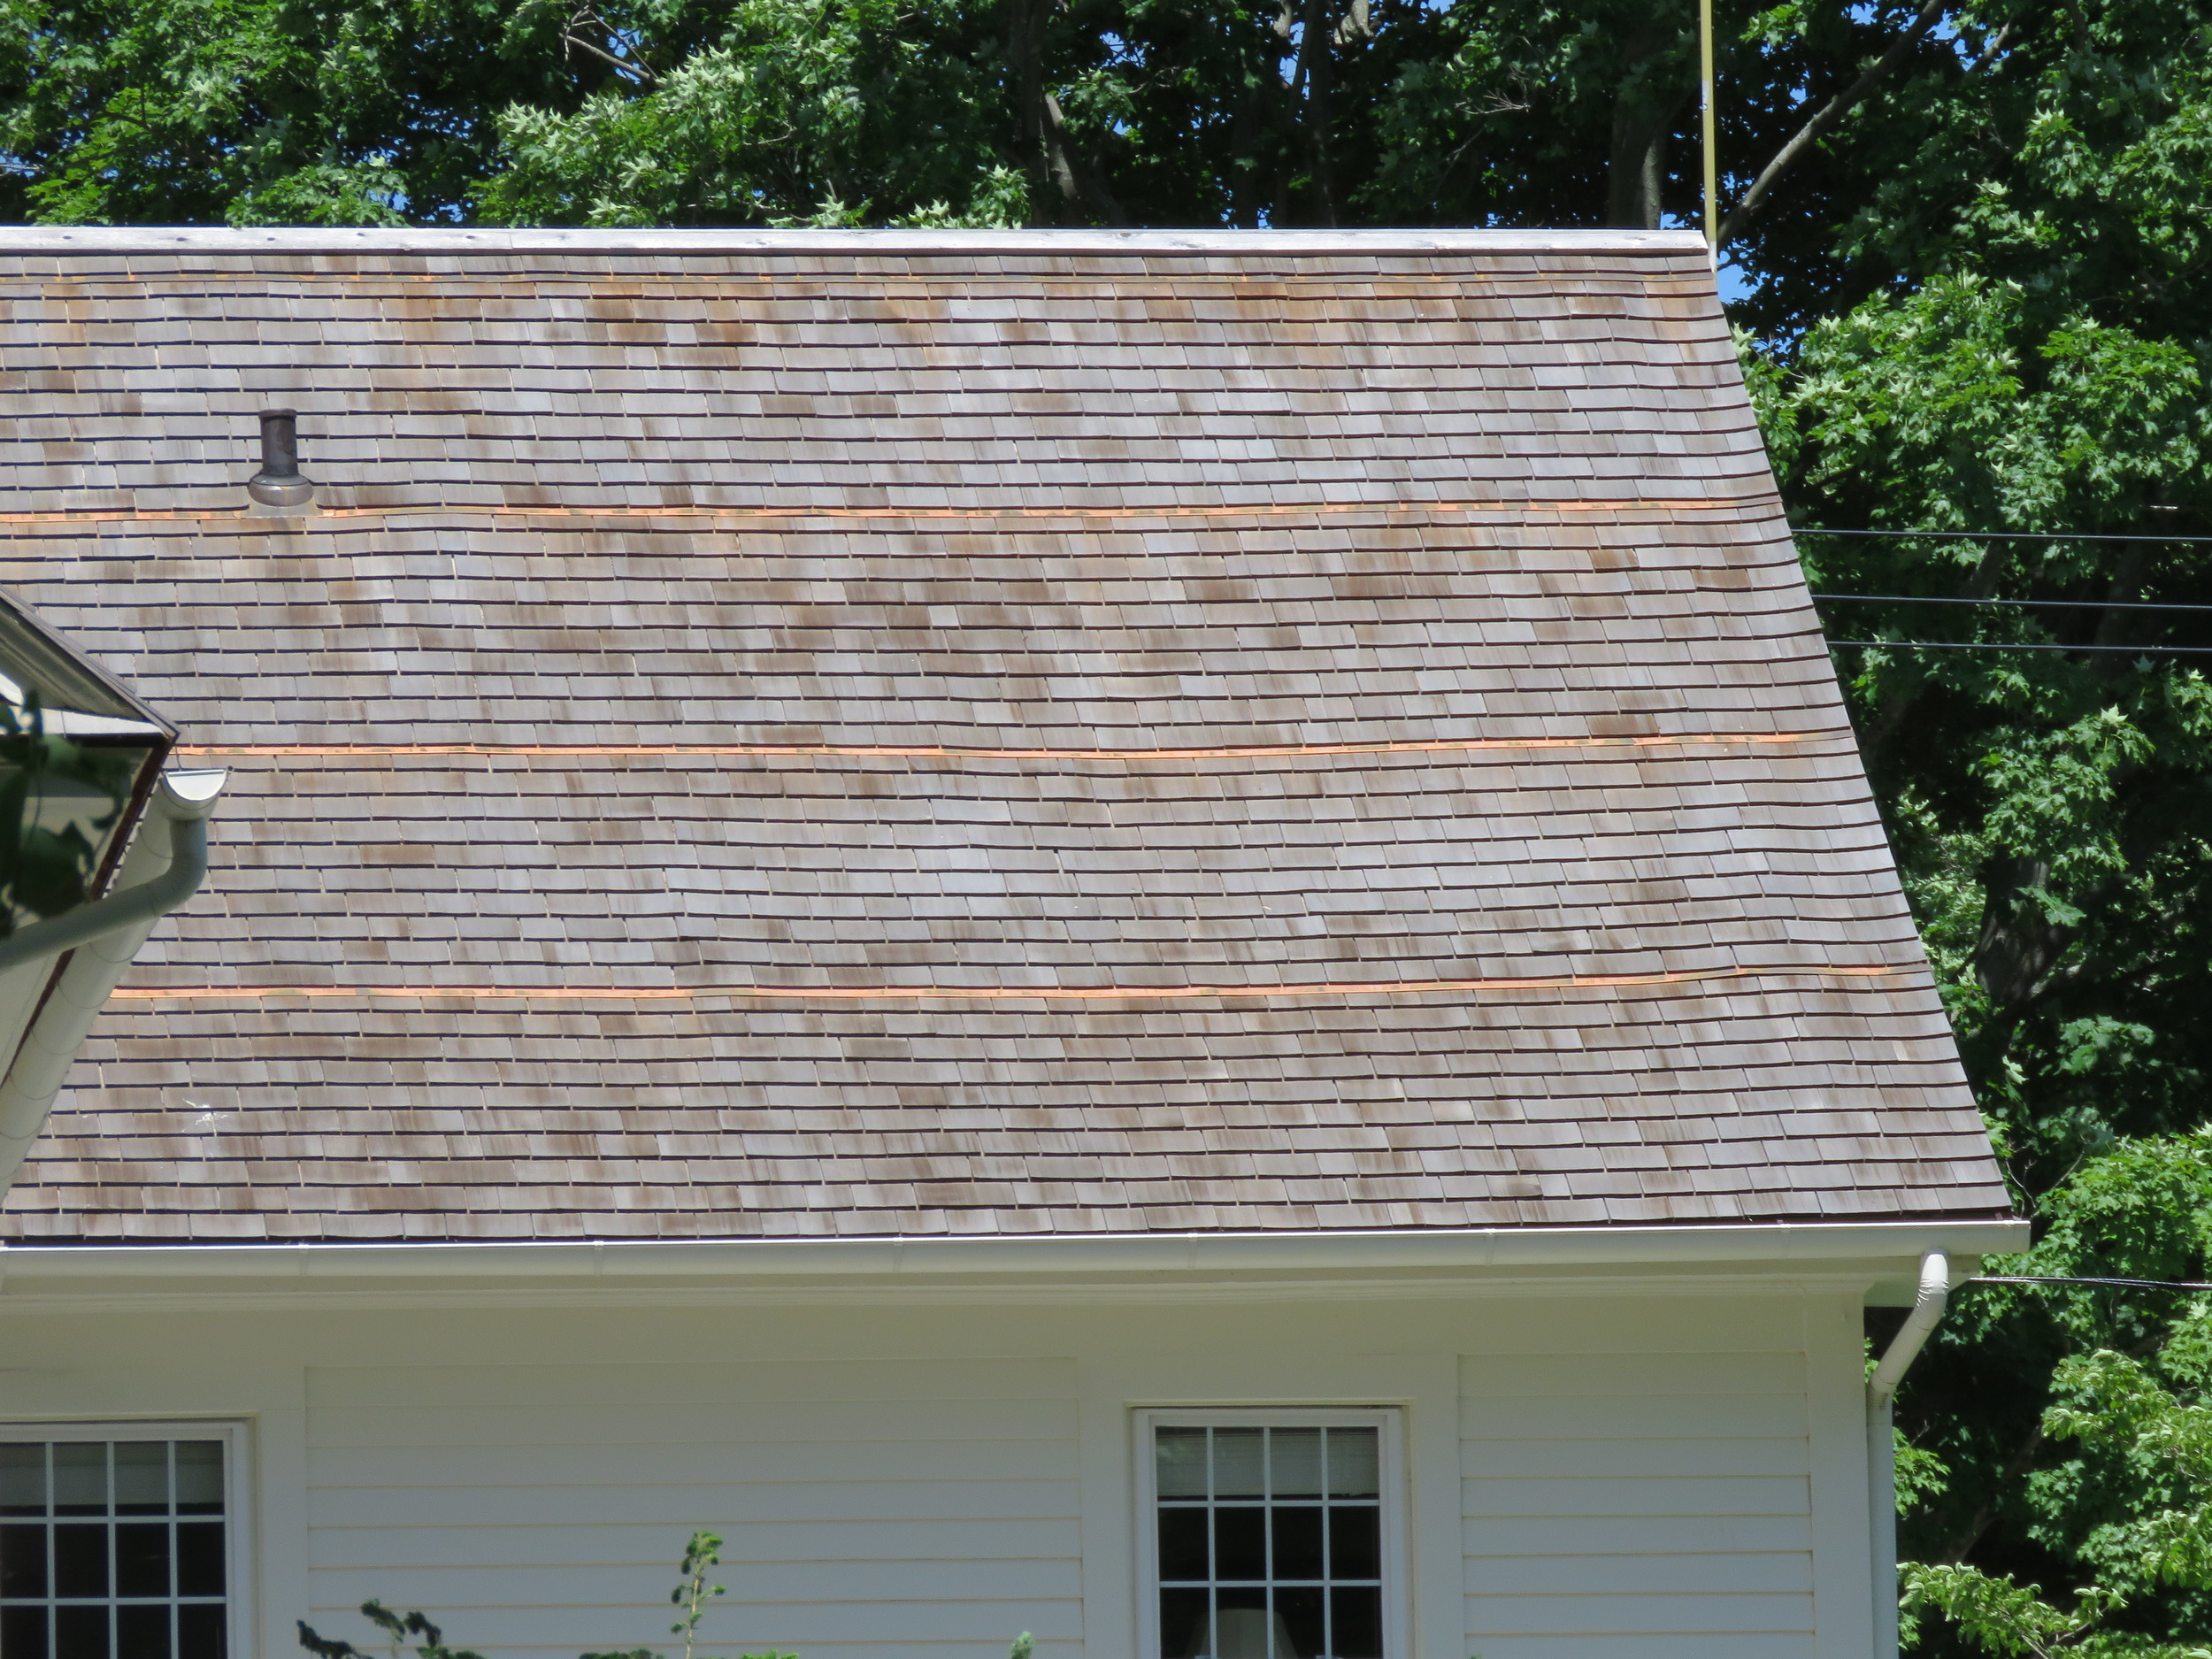 A fairly new cedar shingle roof. Note the copper strips installed to inhibit the growth of algae.